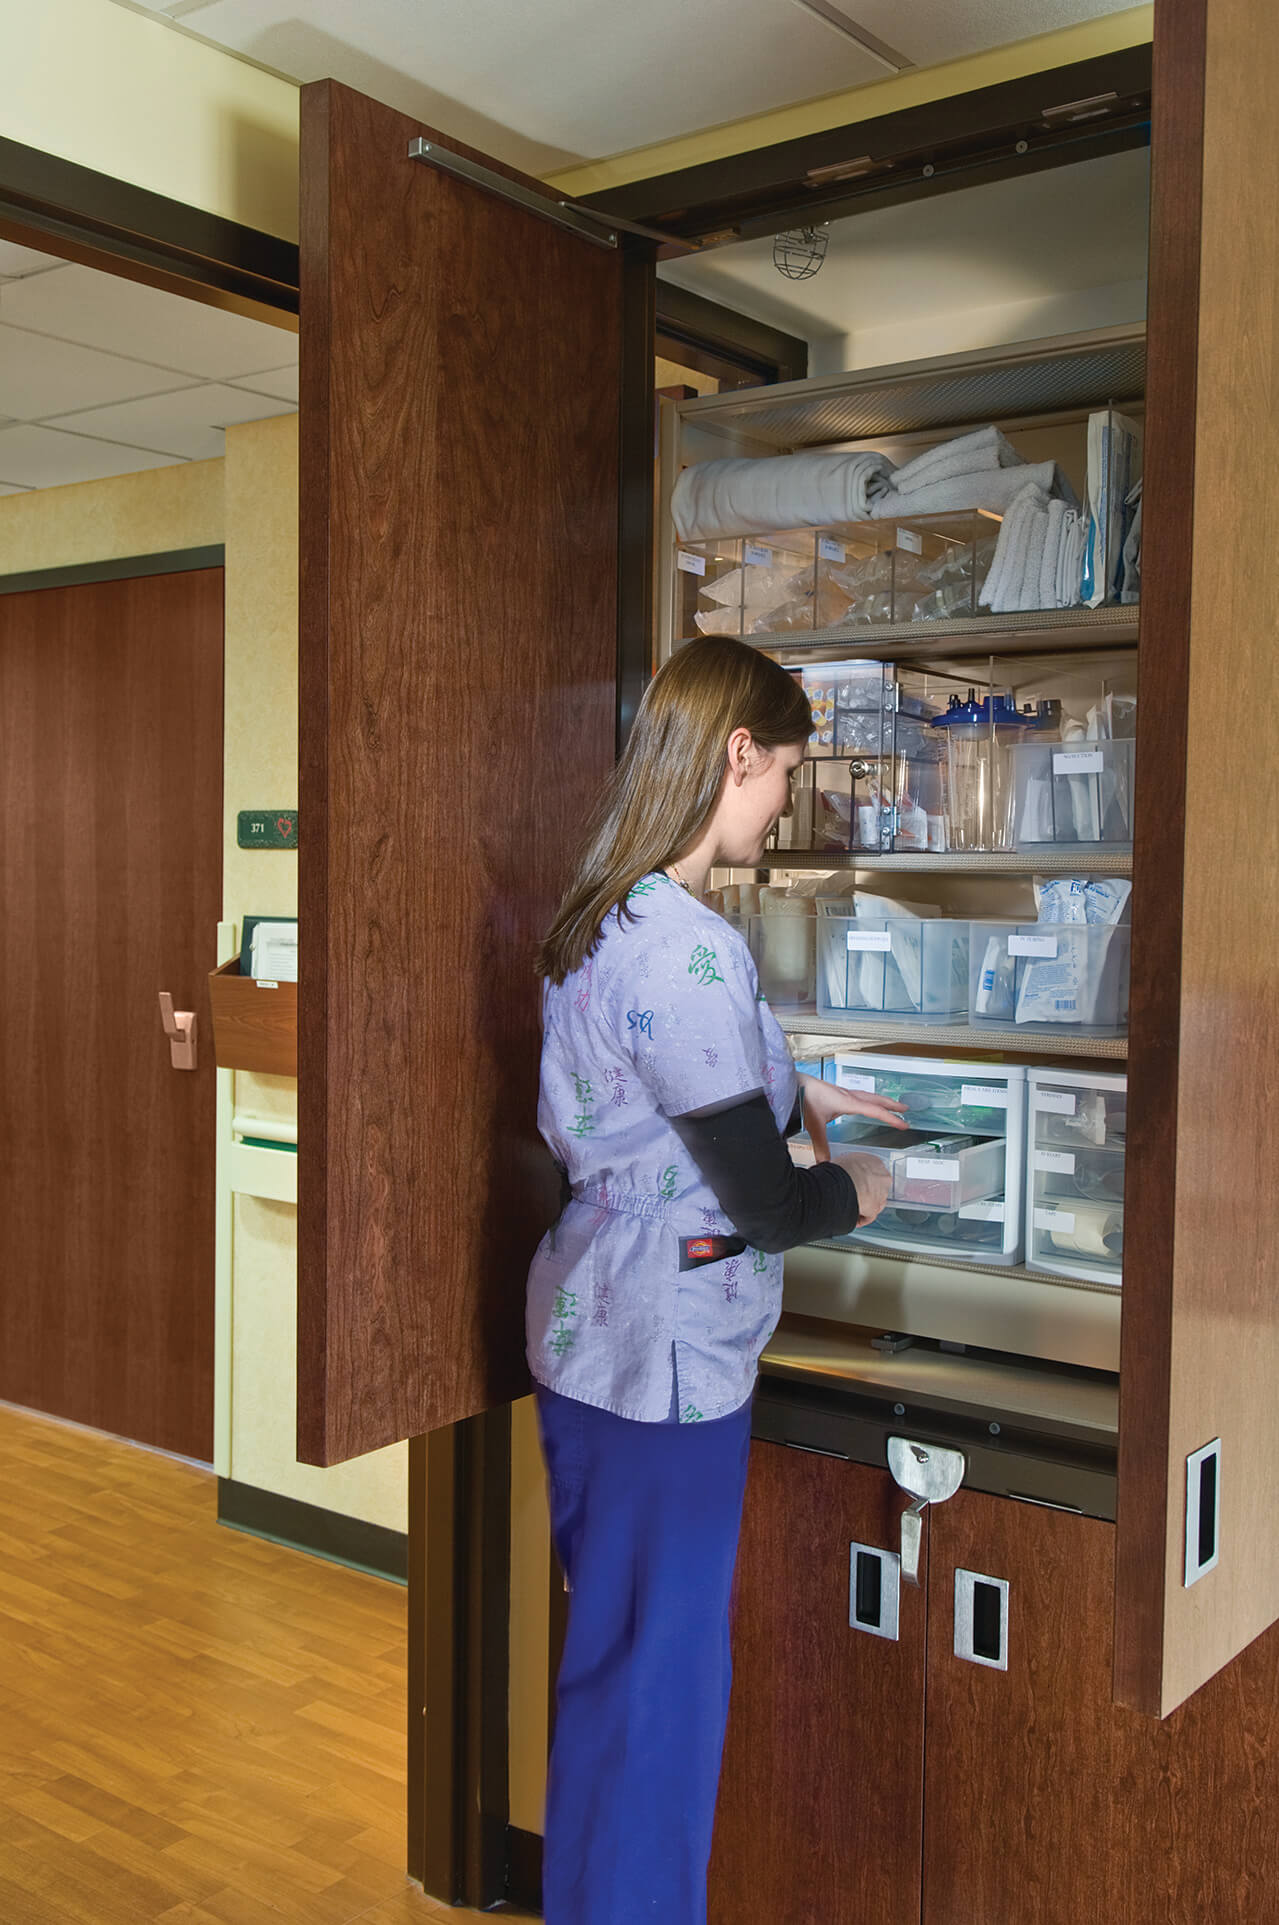 CoreStor Patient Server allows easy access inside the patients room